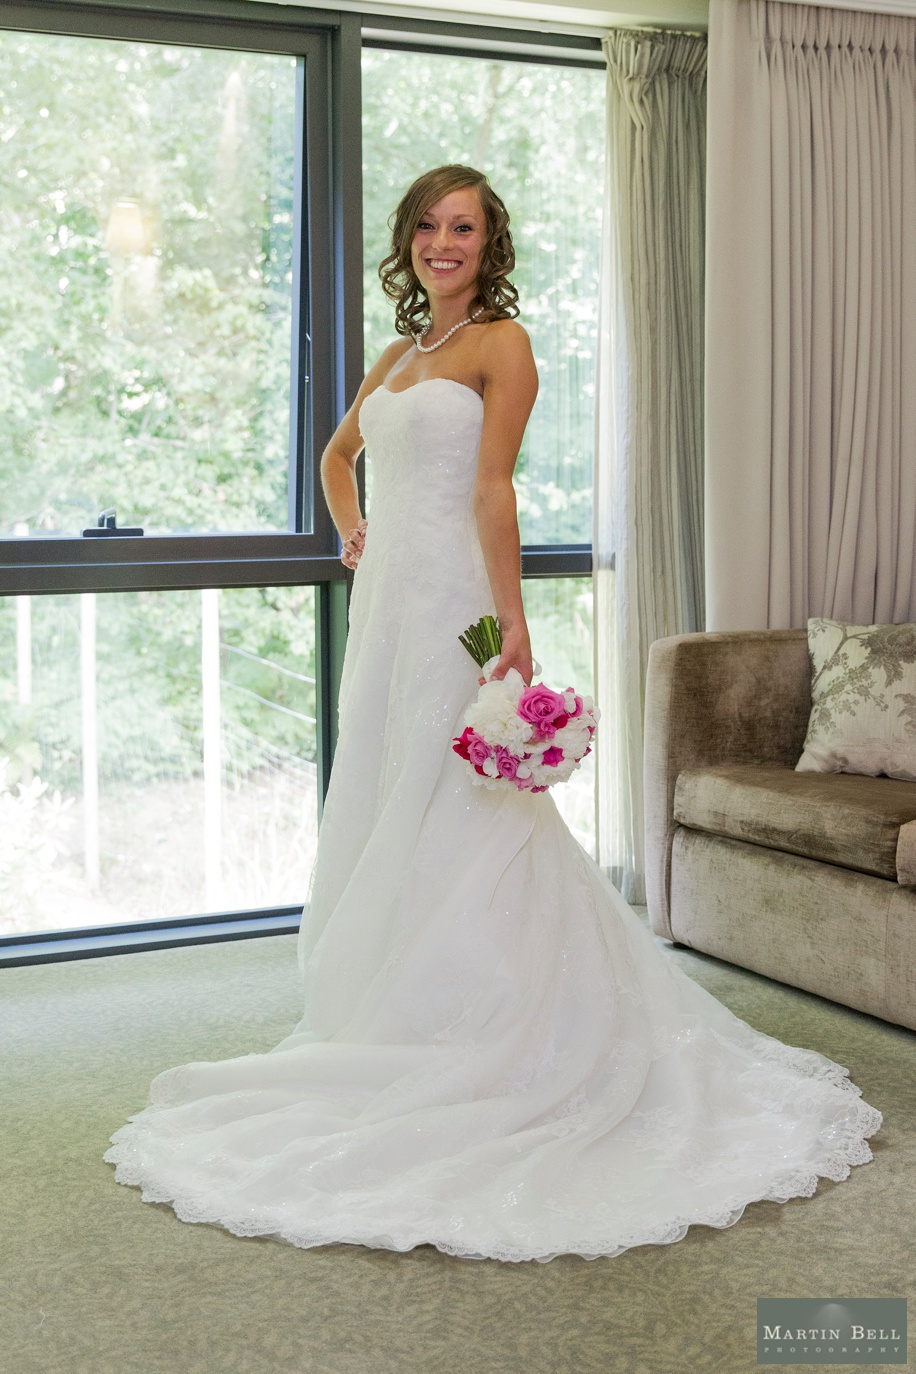 Beautiful Bride photograph at Rhinefield House wedding